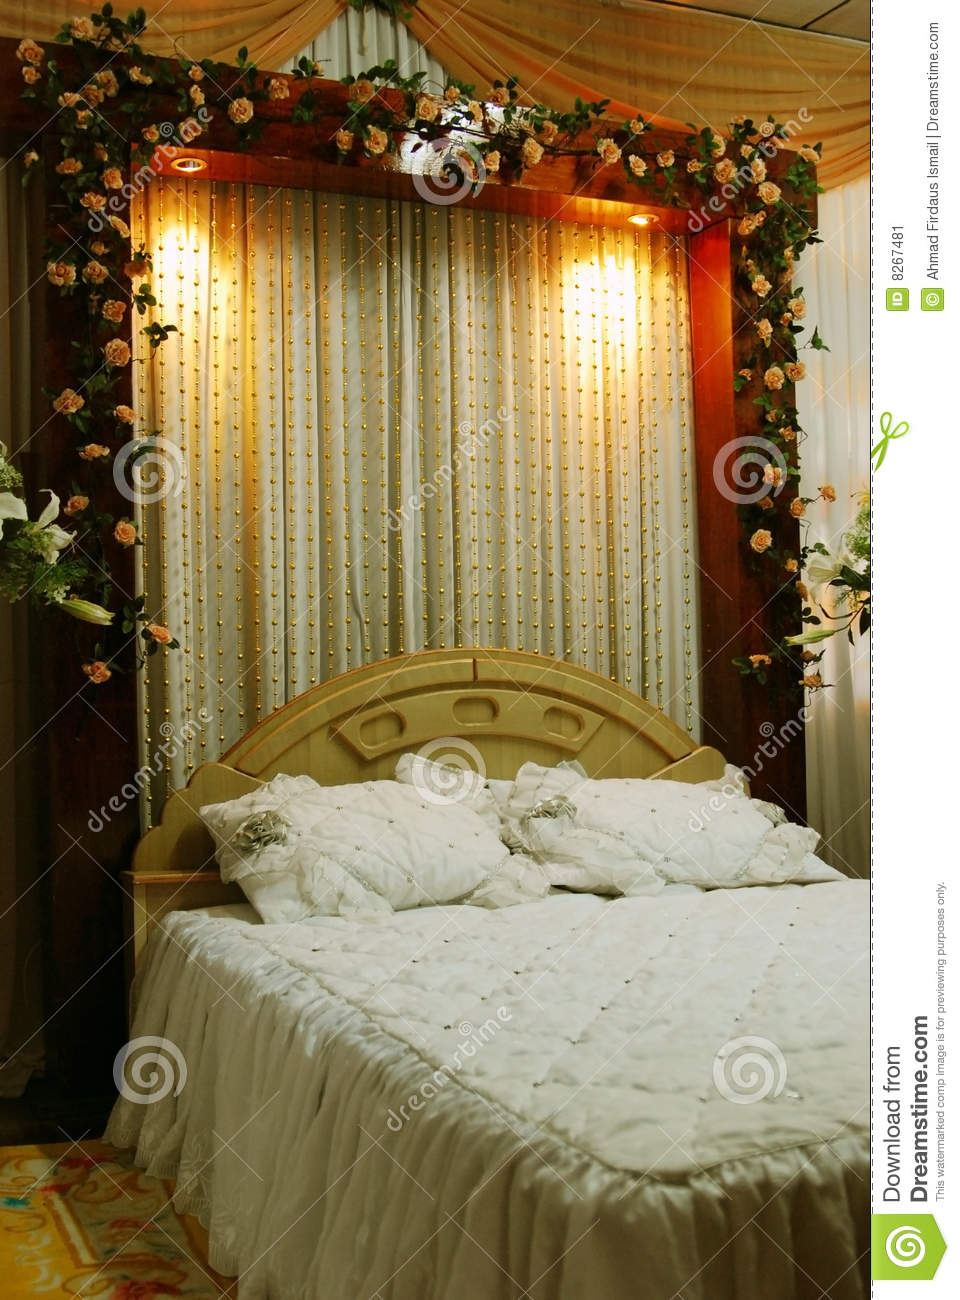 wedding bed decoration stock image image of banquet environment 8267481